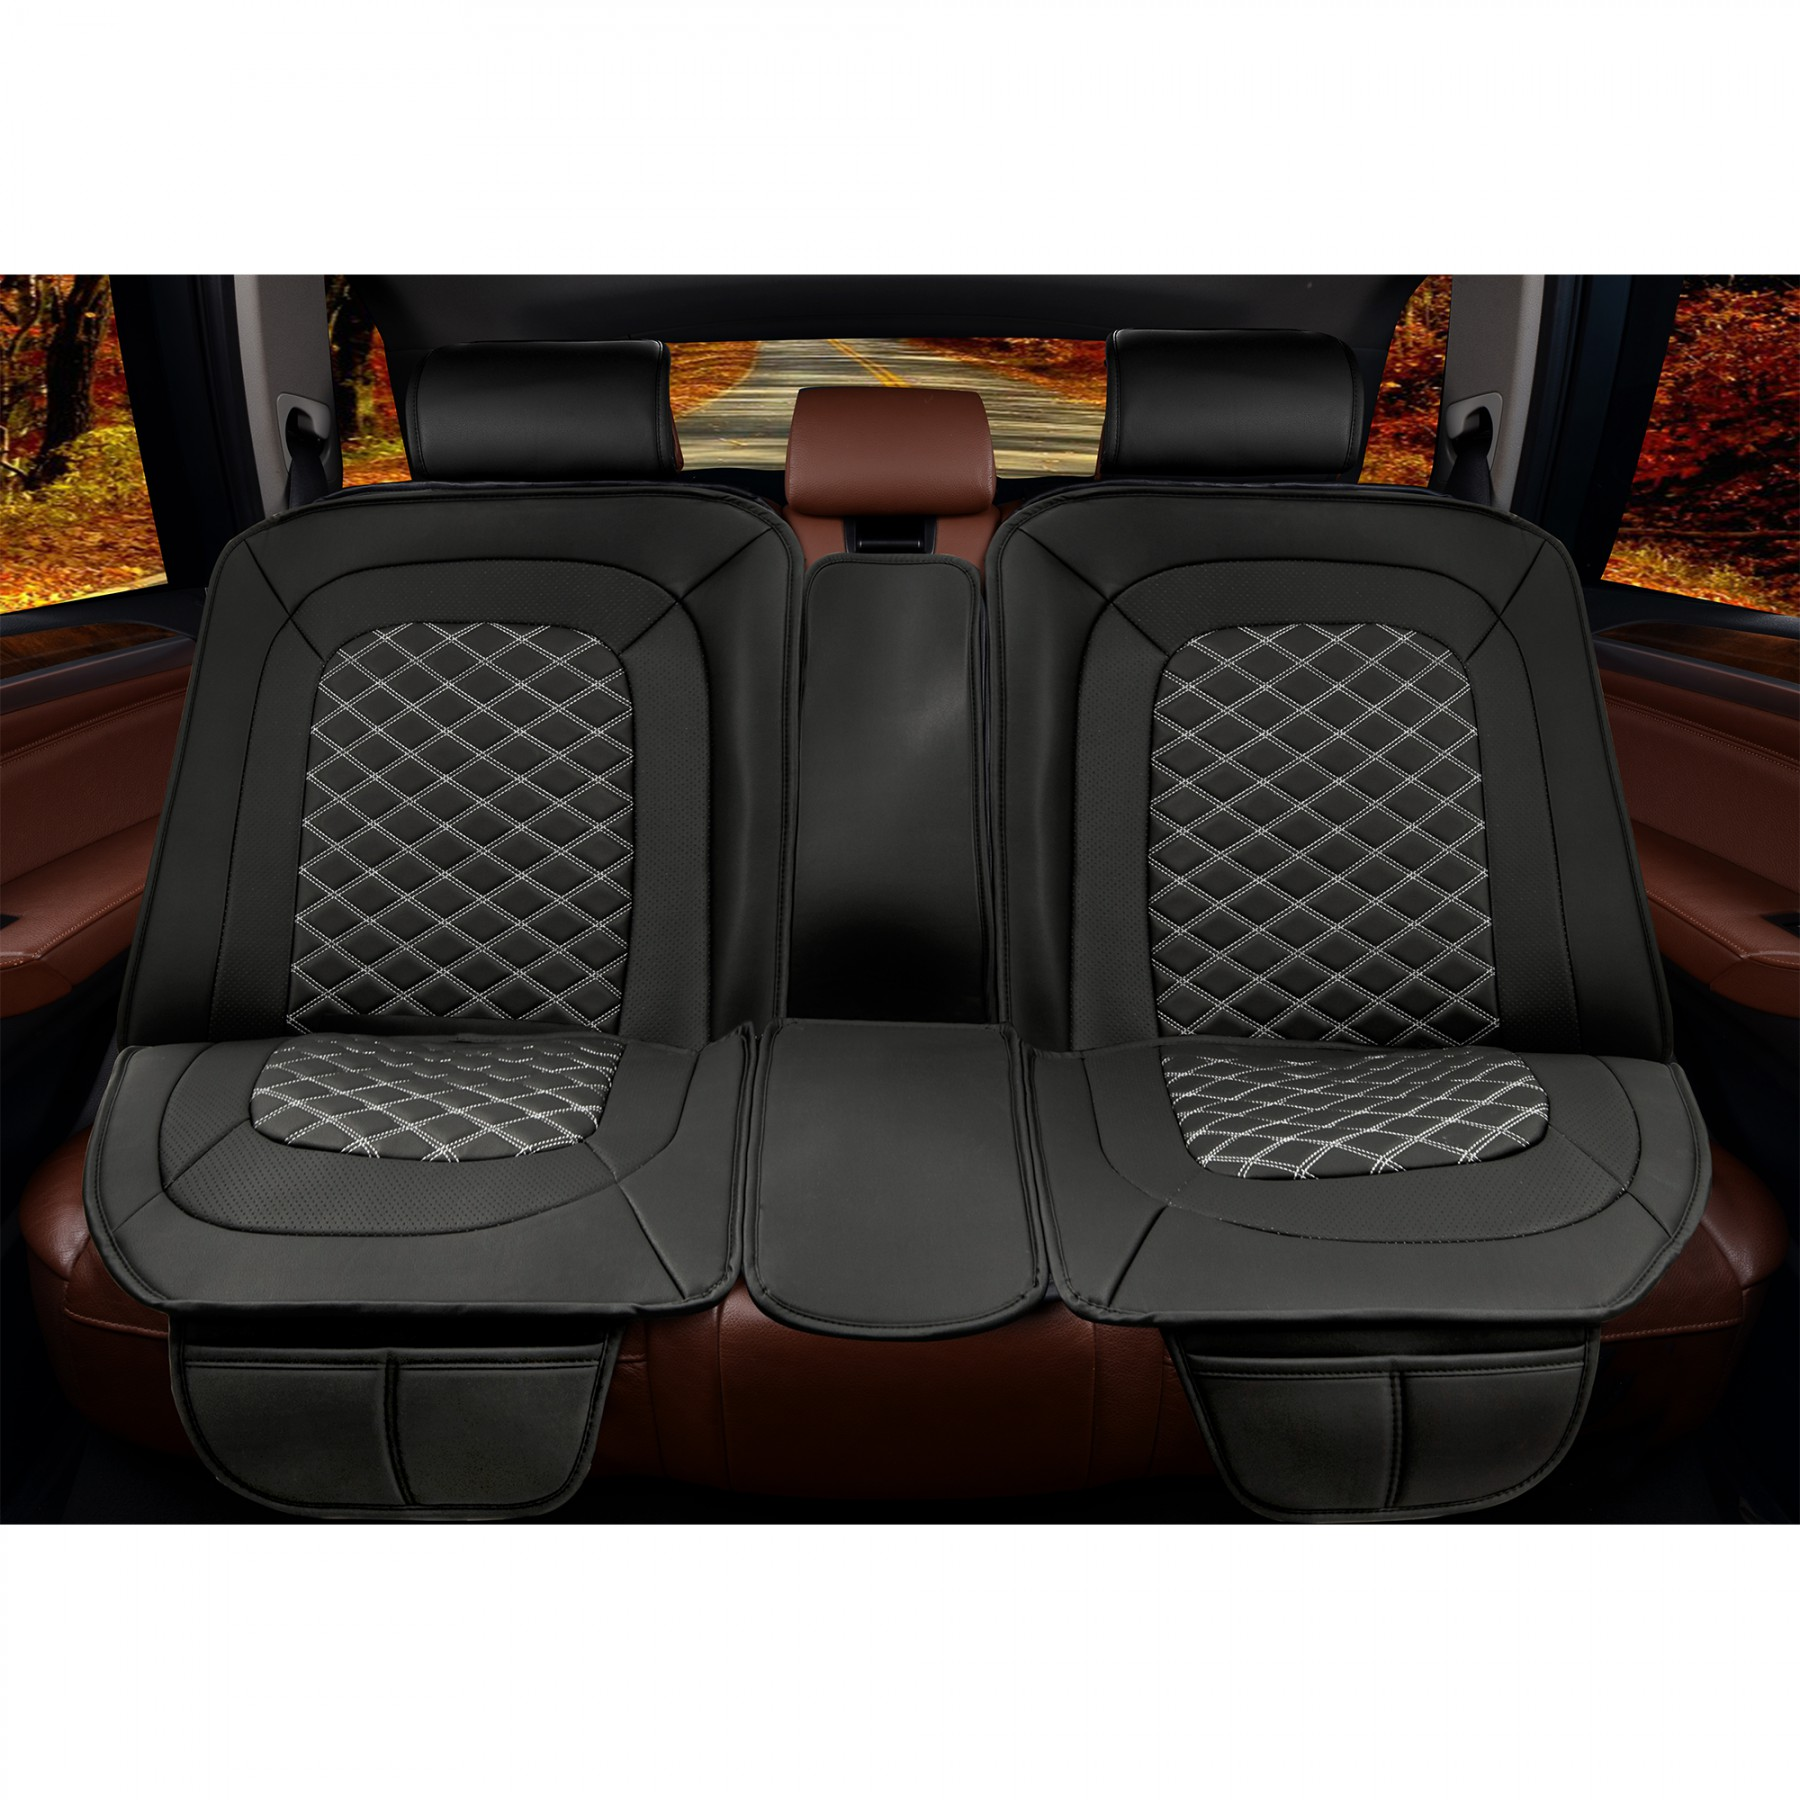 Luxury Series Black Diamond Car Rear Seat Cover